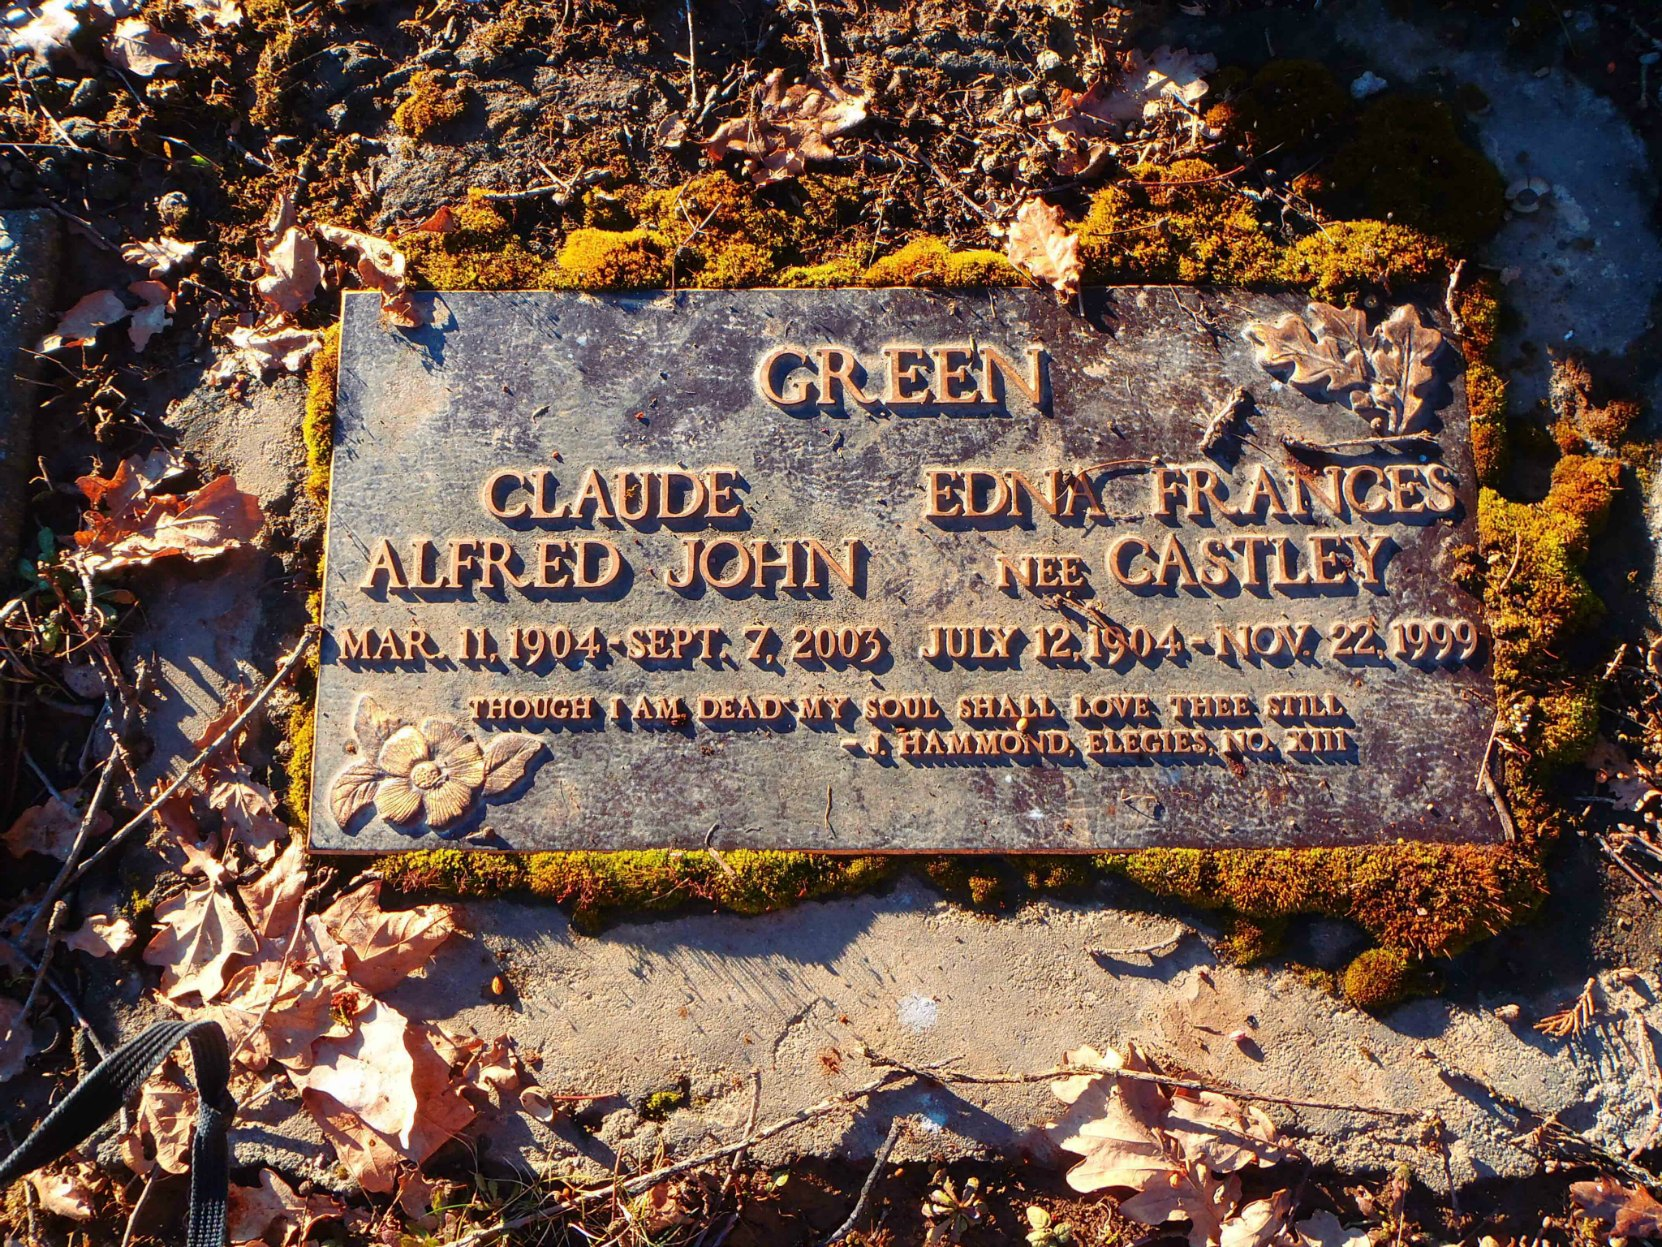 Claude Green and Edna Green grave marker, St. Mary's Somenos cemetery